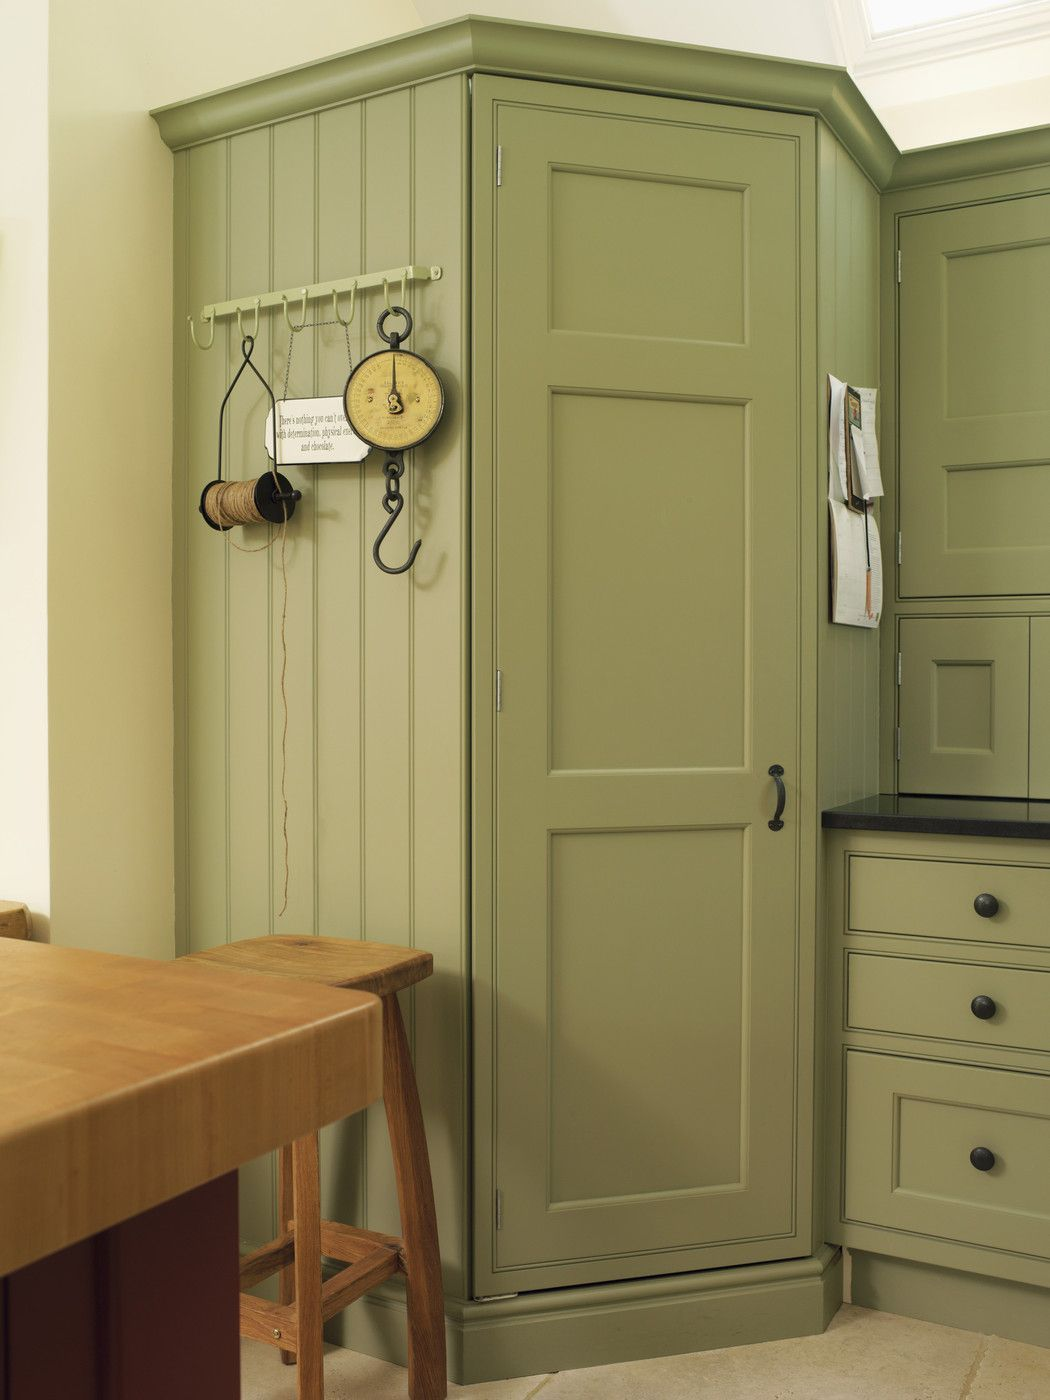 I Wouldn T Do Green But Love The Long Cujpboard Kitchen